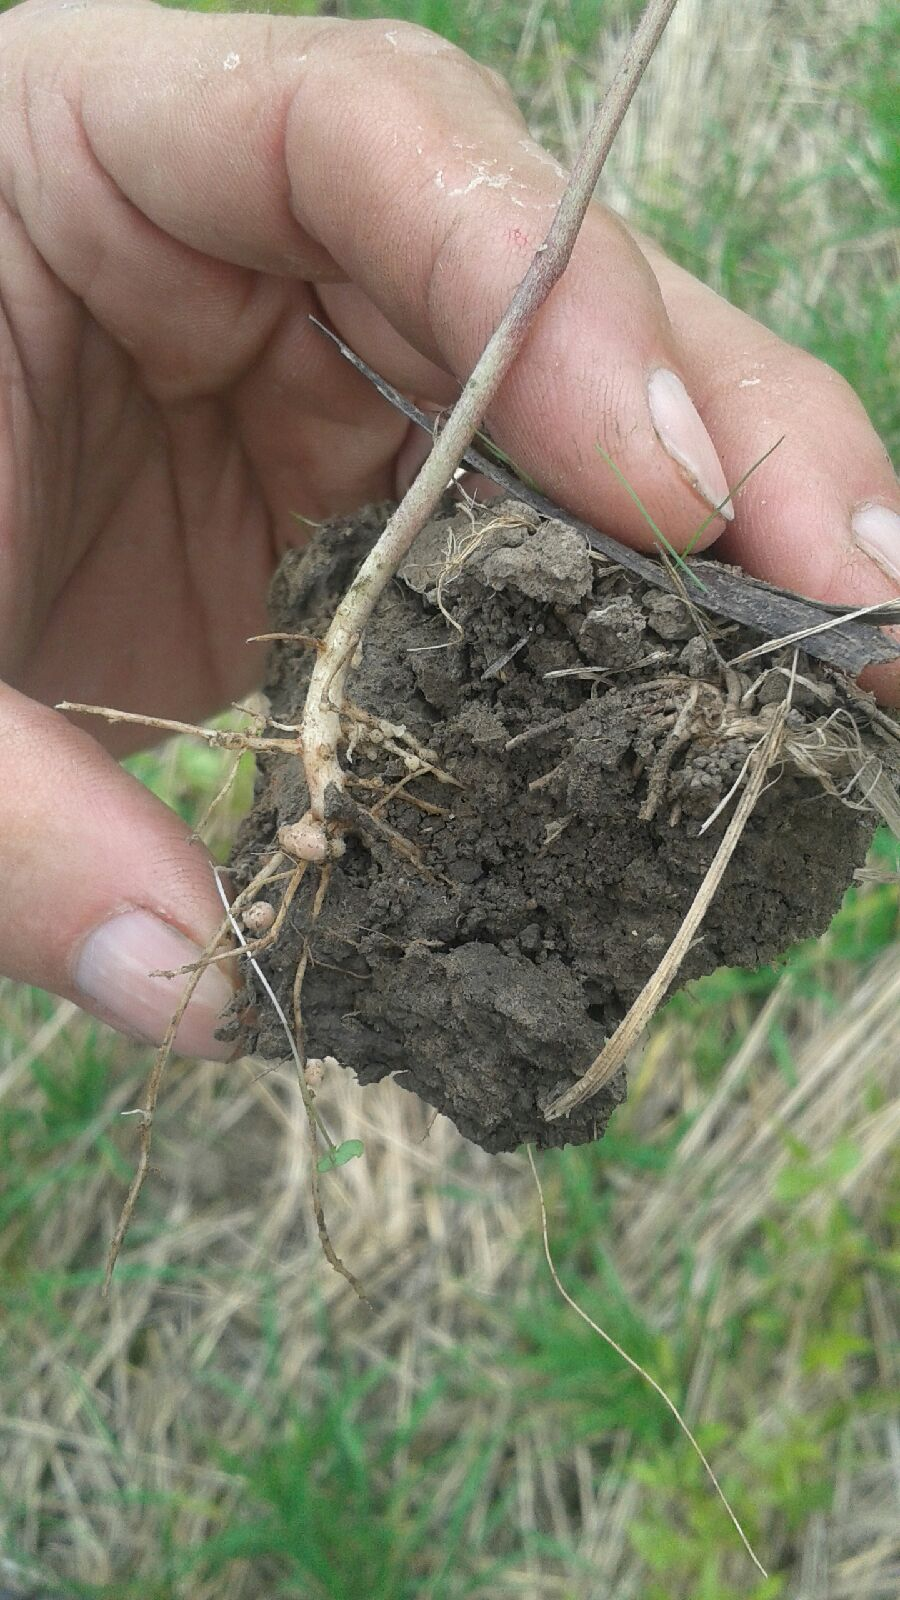 Mung Bean nodules from wheat straw cover